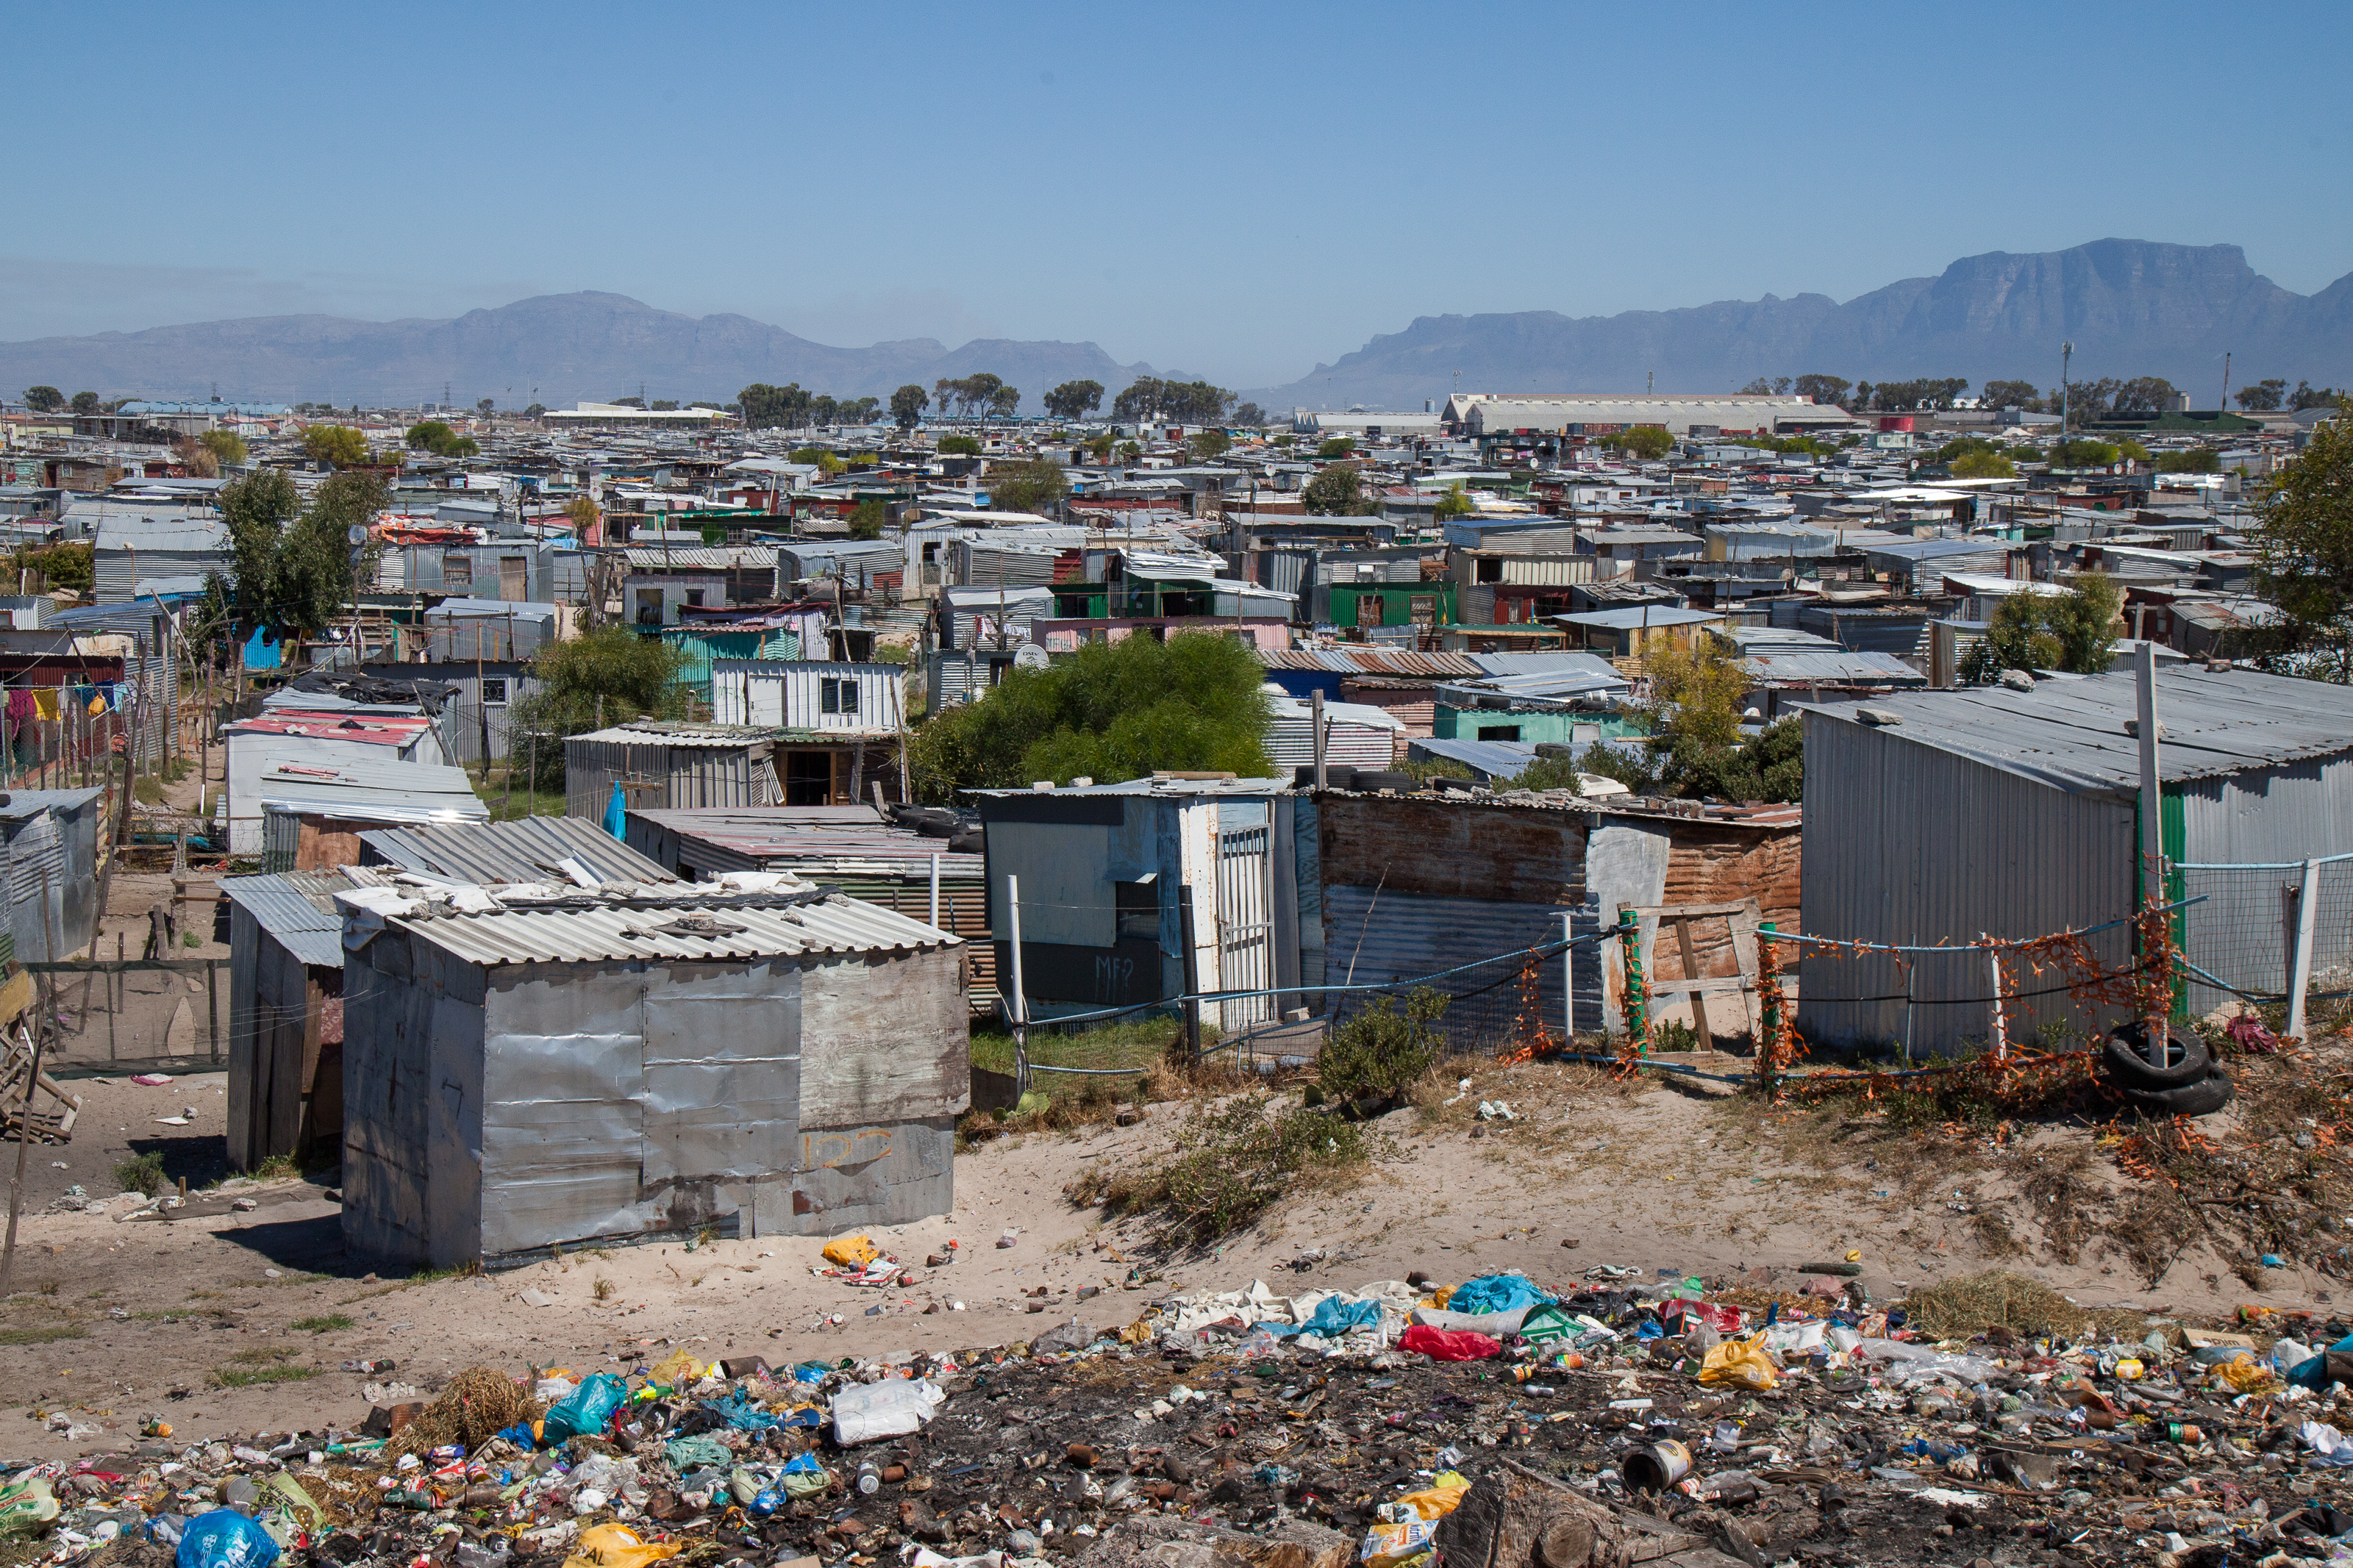 education in informal settlements Hygiene education, the study is based only on hygiene education in informal settlements and advocates that the health and hygiene education and hygiene education programmes should be seen as separate and independent programmes.